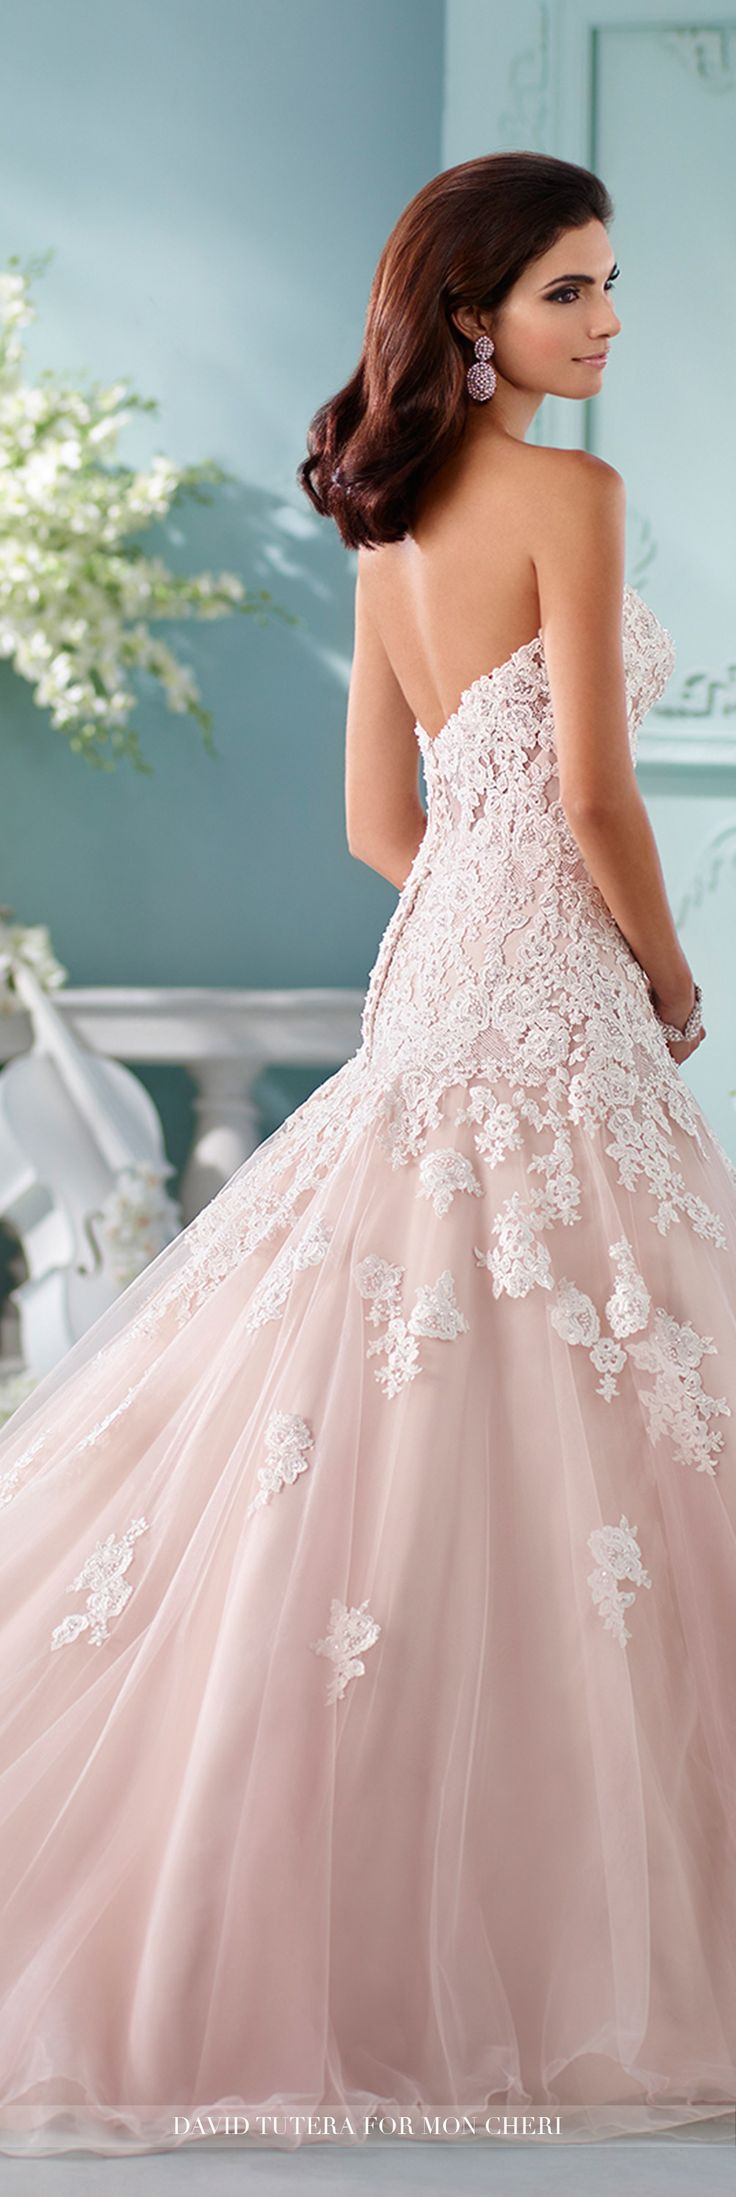 Pink and white wedding dresses images for White and hot pink wedding dress